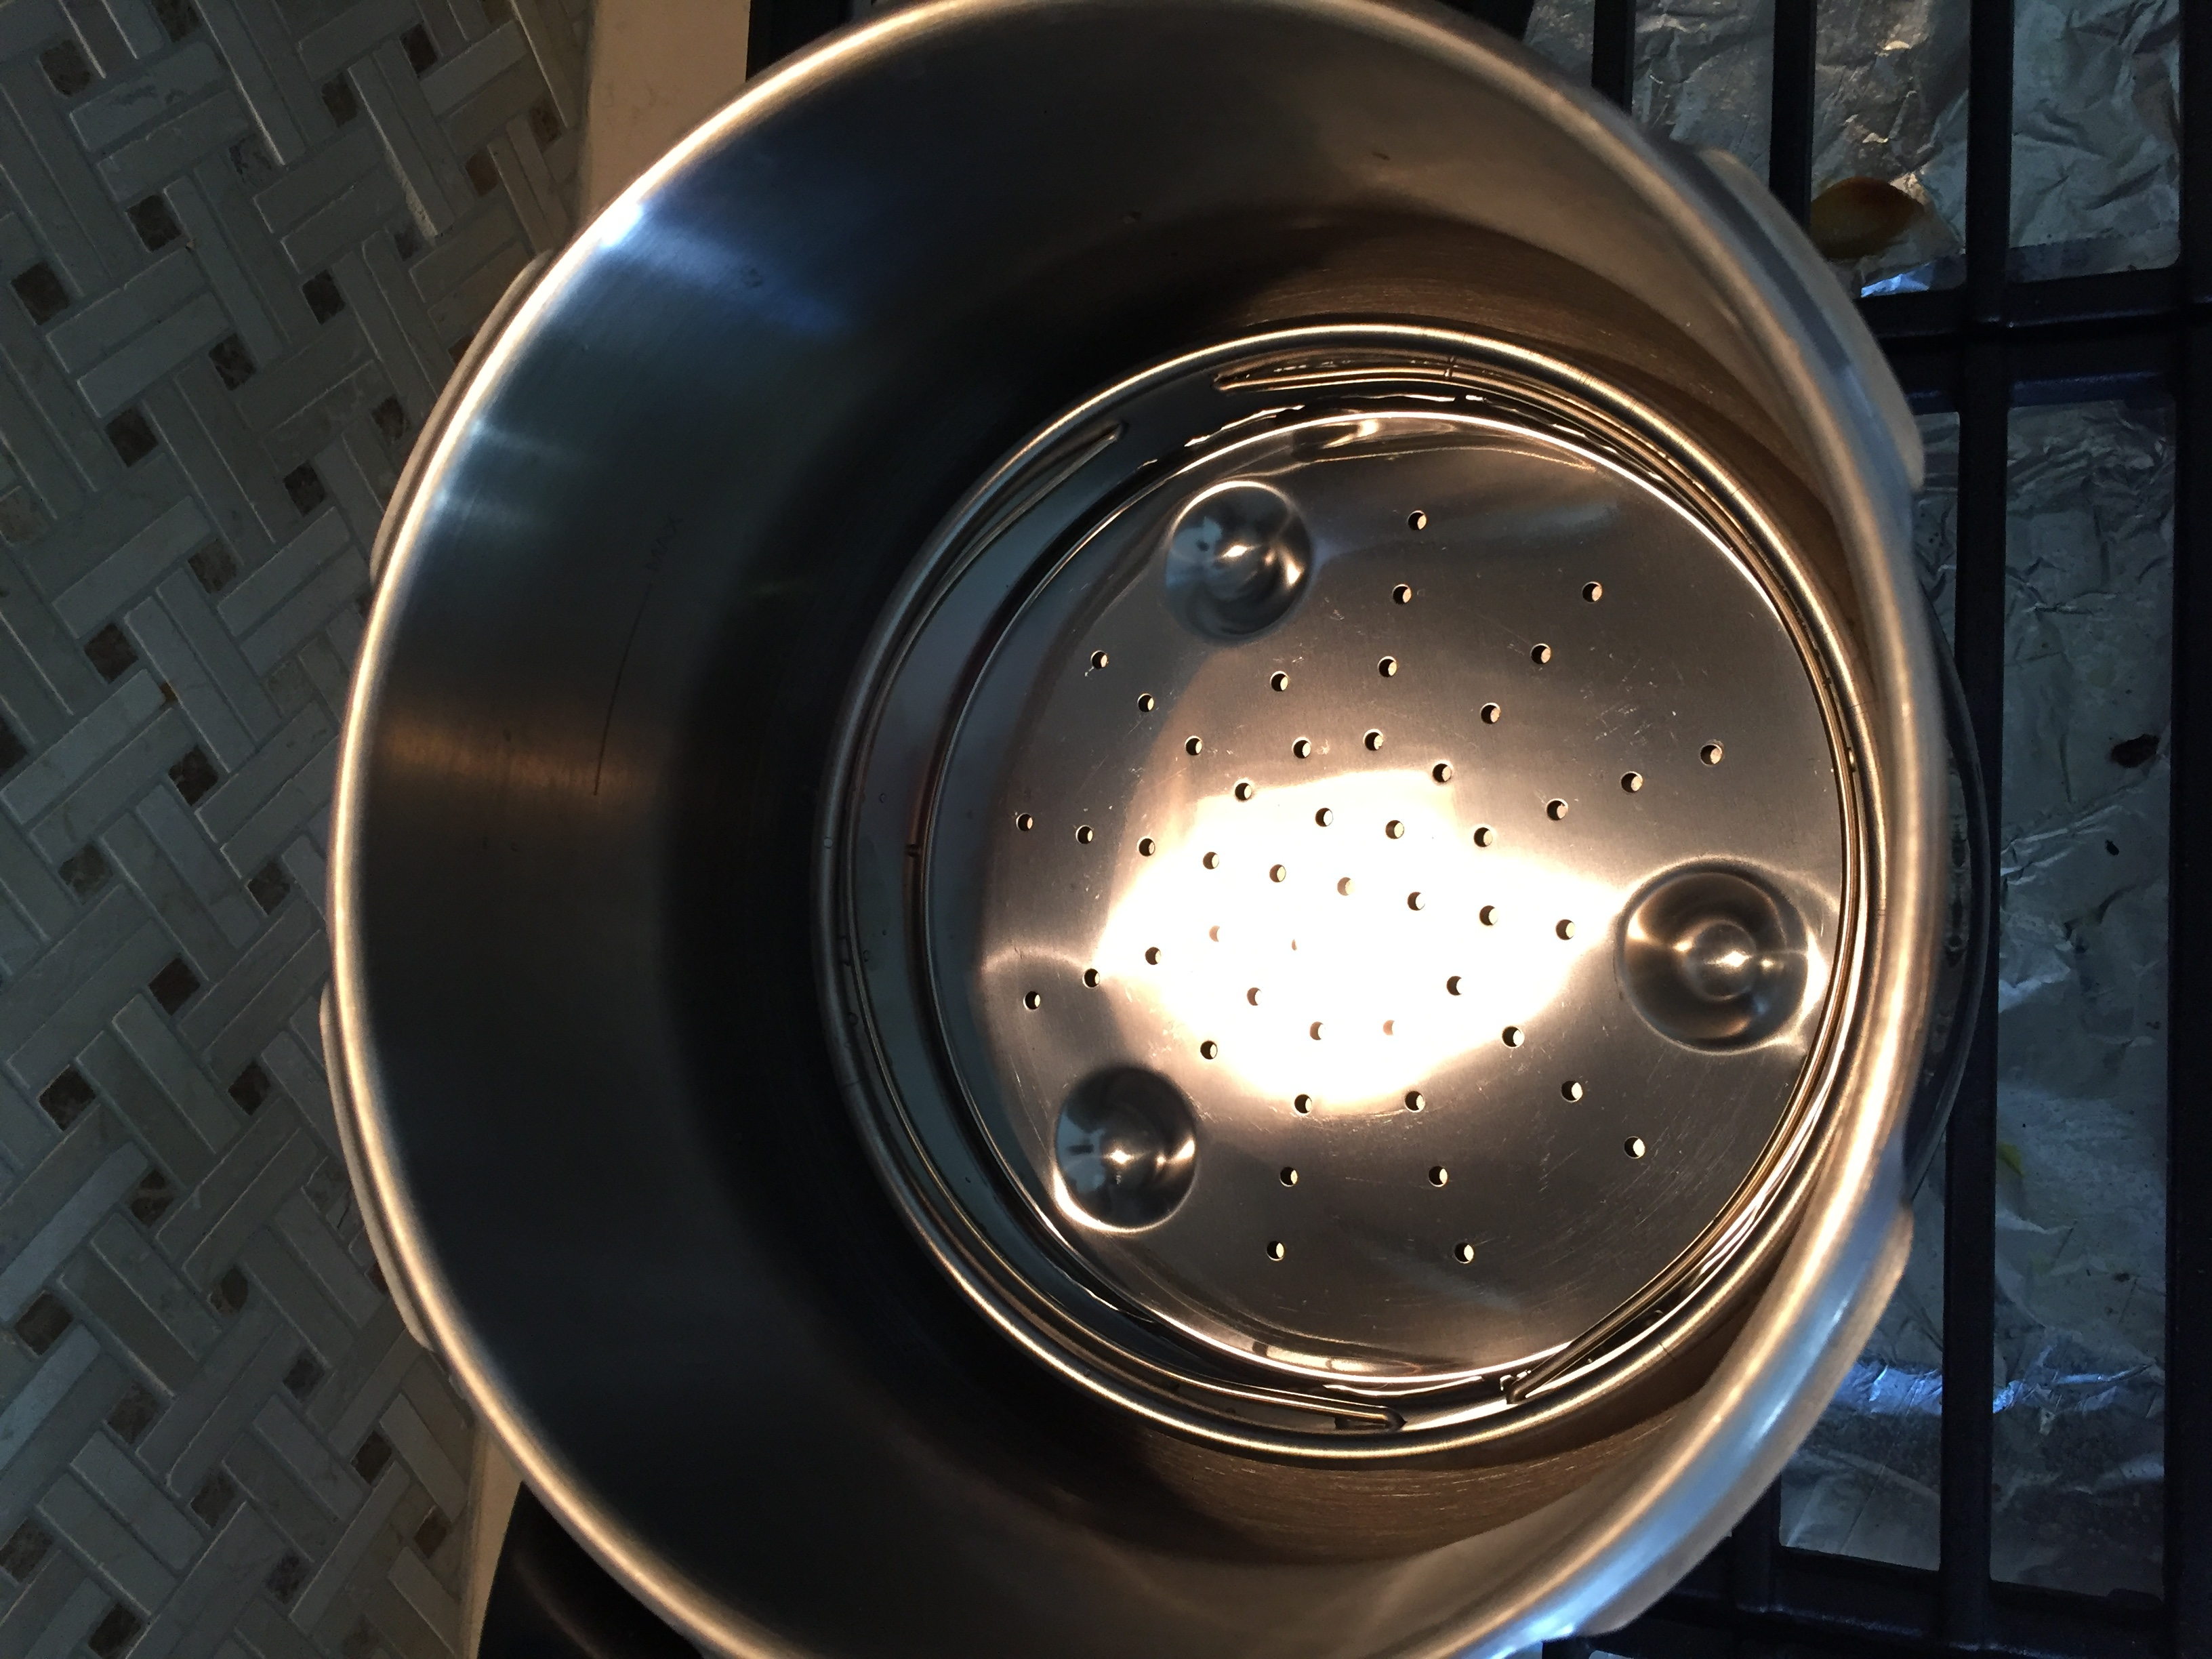 Steam tray and water inside the pressure cooker.